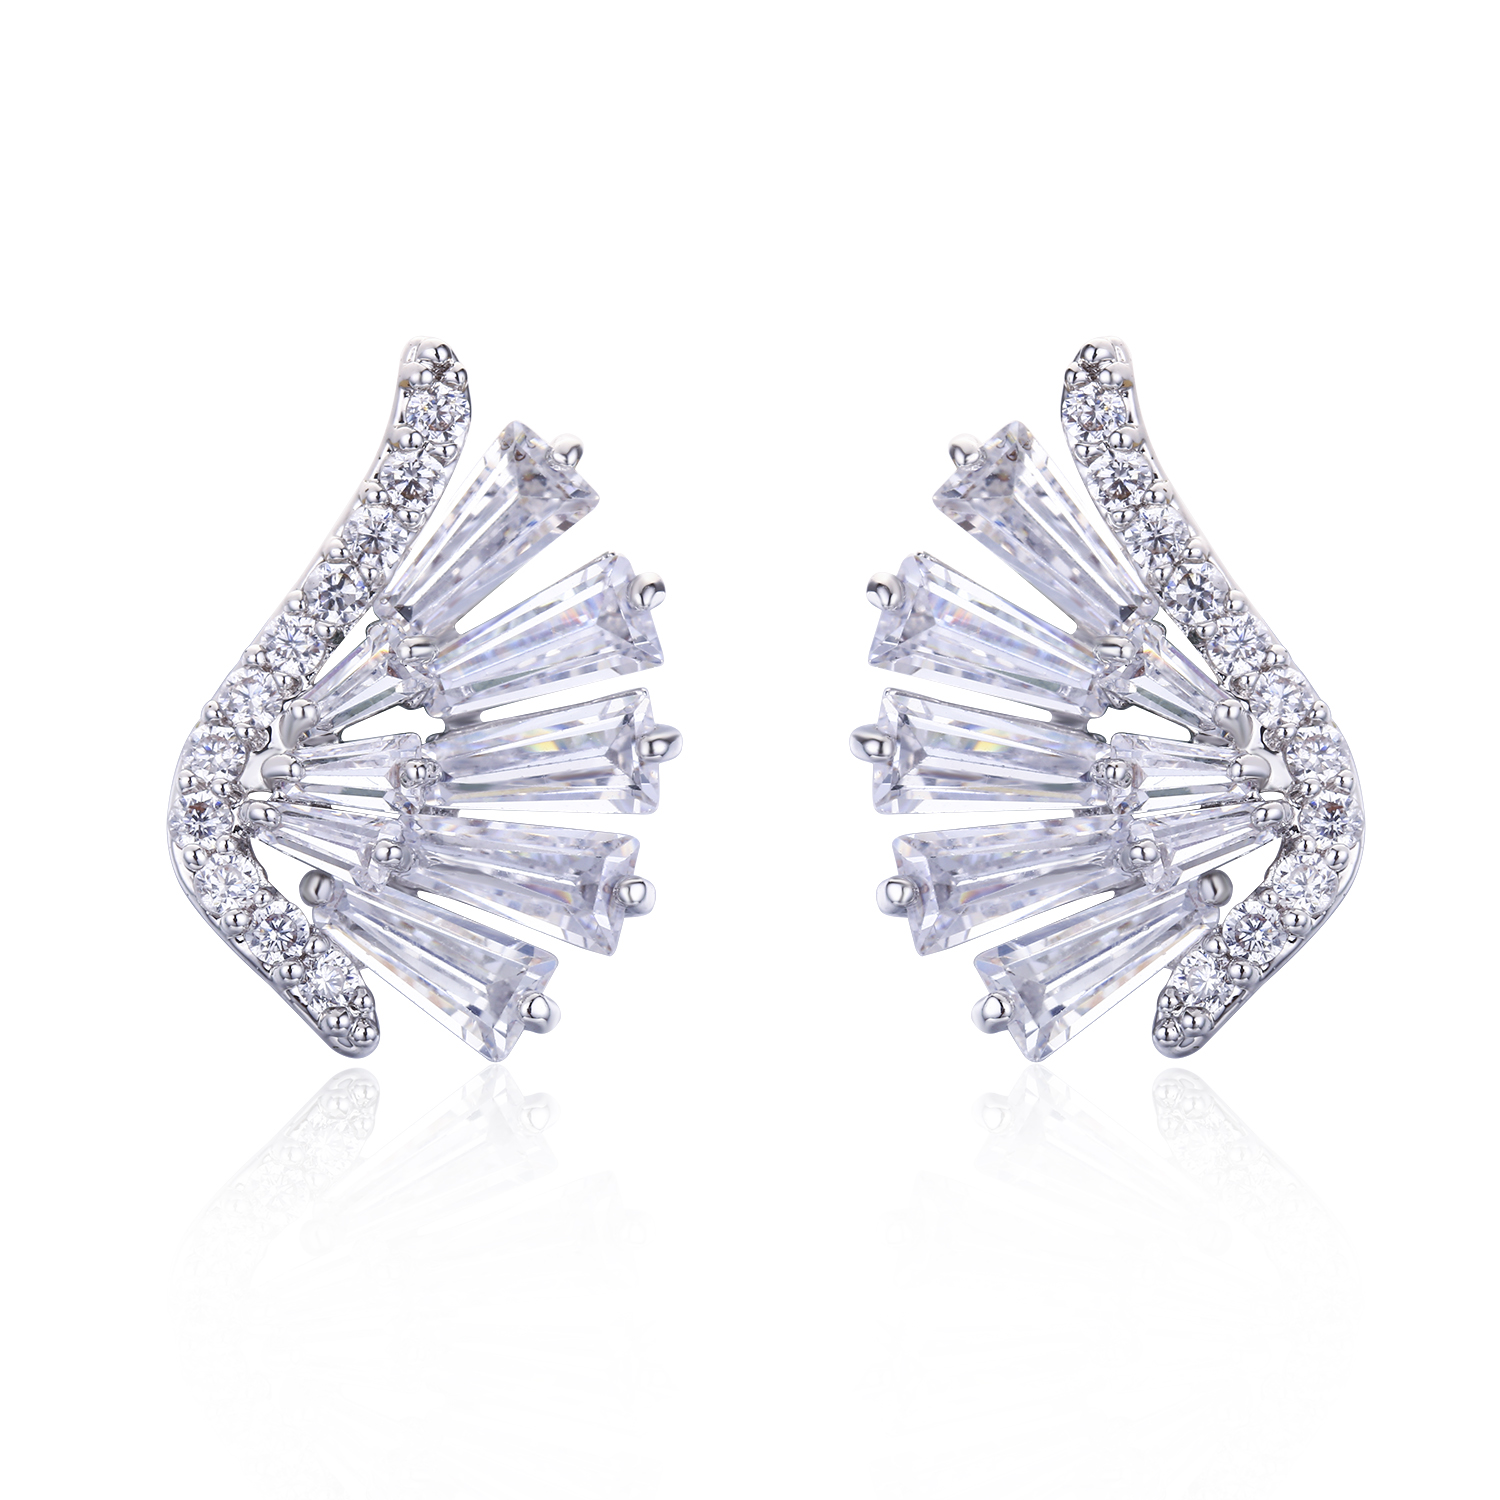 ER3419-Angel Wing Earring with Round & Baguette CZ in Silver/Brass under Rhodium plating from China Top Jewelry supplier